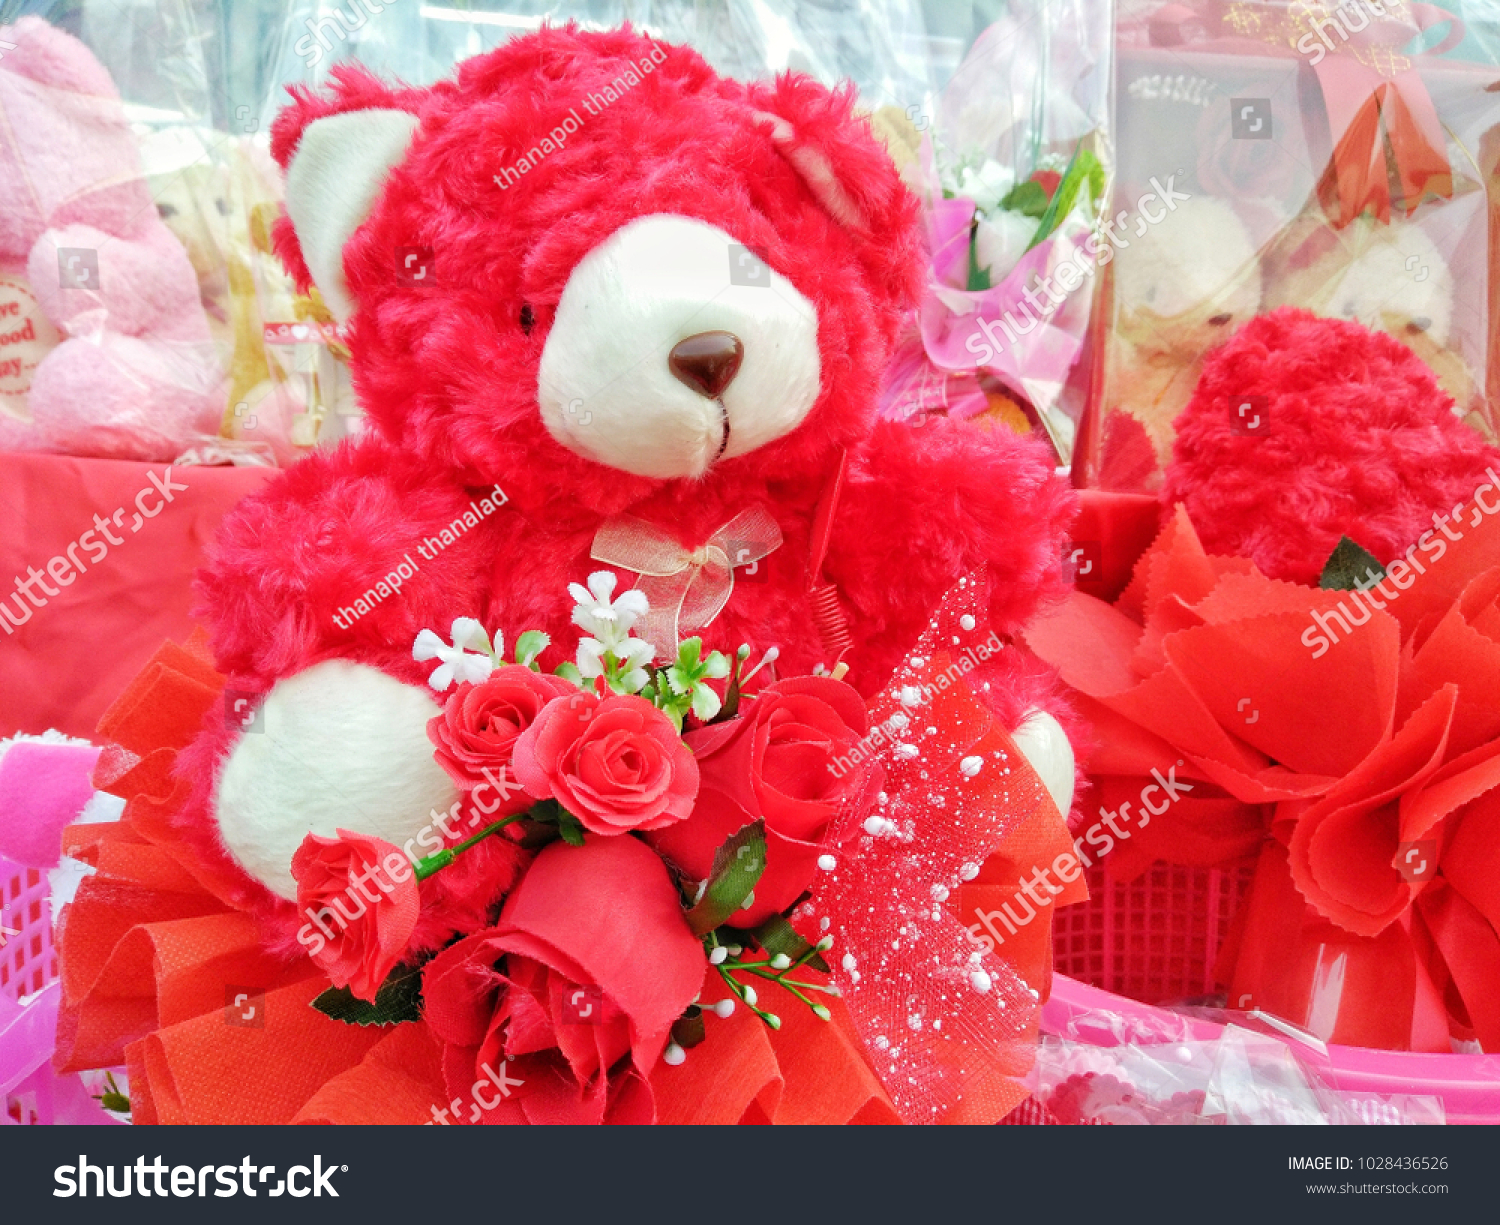 Teddy bear with red flower in the heart of Valentine's Day #1028436526